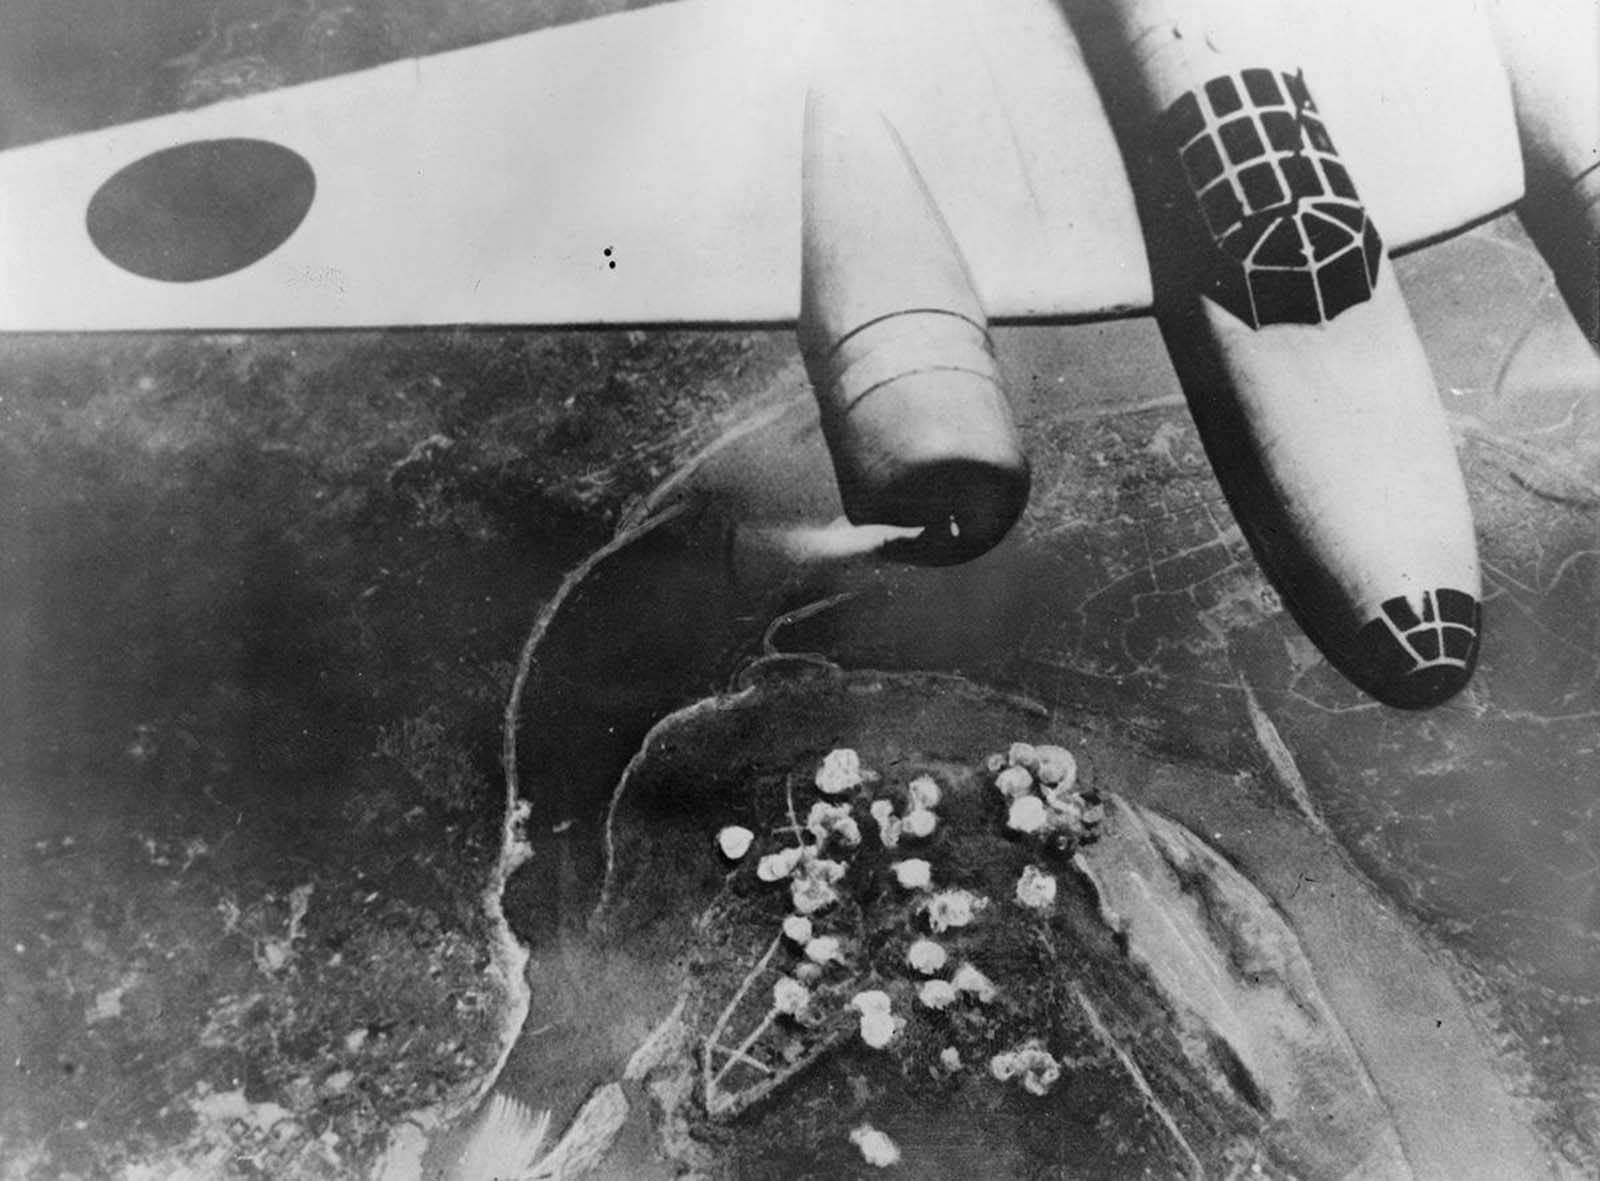 A Japanese bomber in flight on September 14, 1940. Below, smoke rises from a cluster of bombs dropped on Chongqing, China, near a bend of the Yangtze River.